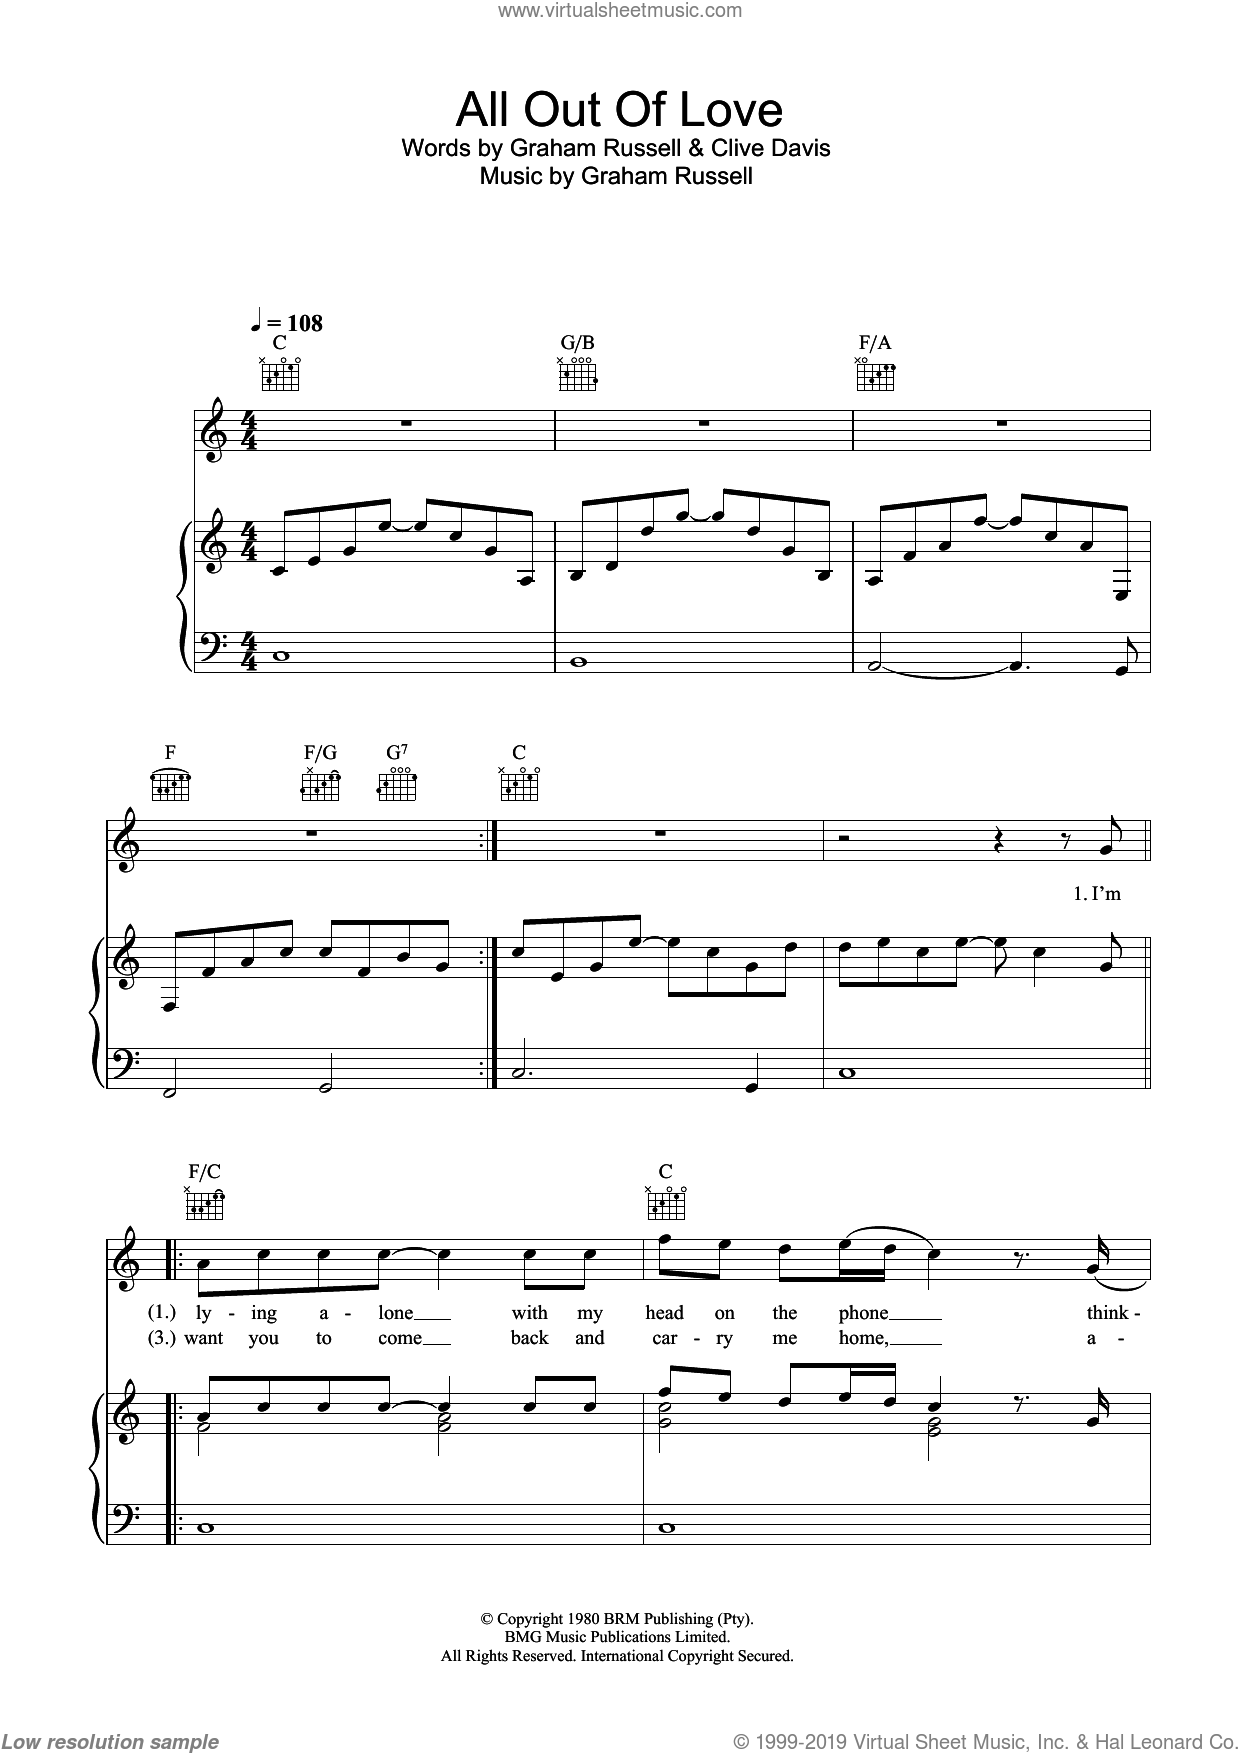 All Out Of Love sheet music for voice, piano or guitar by Air Supply. Score Image Preview.